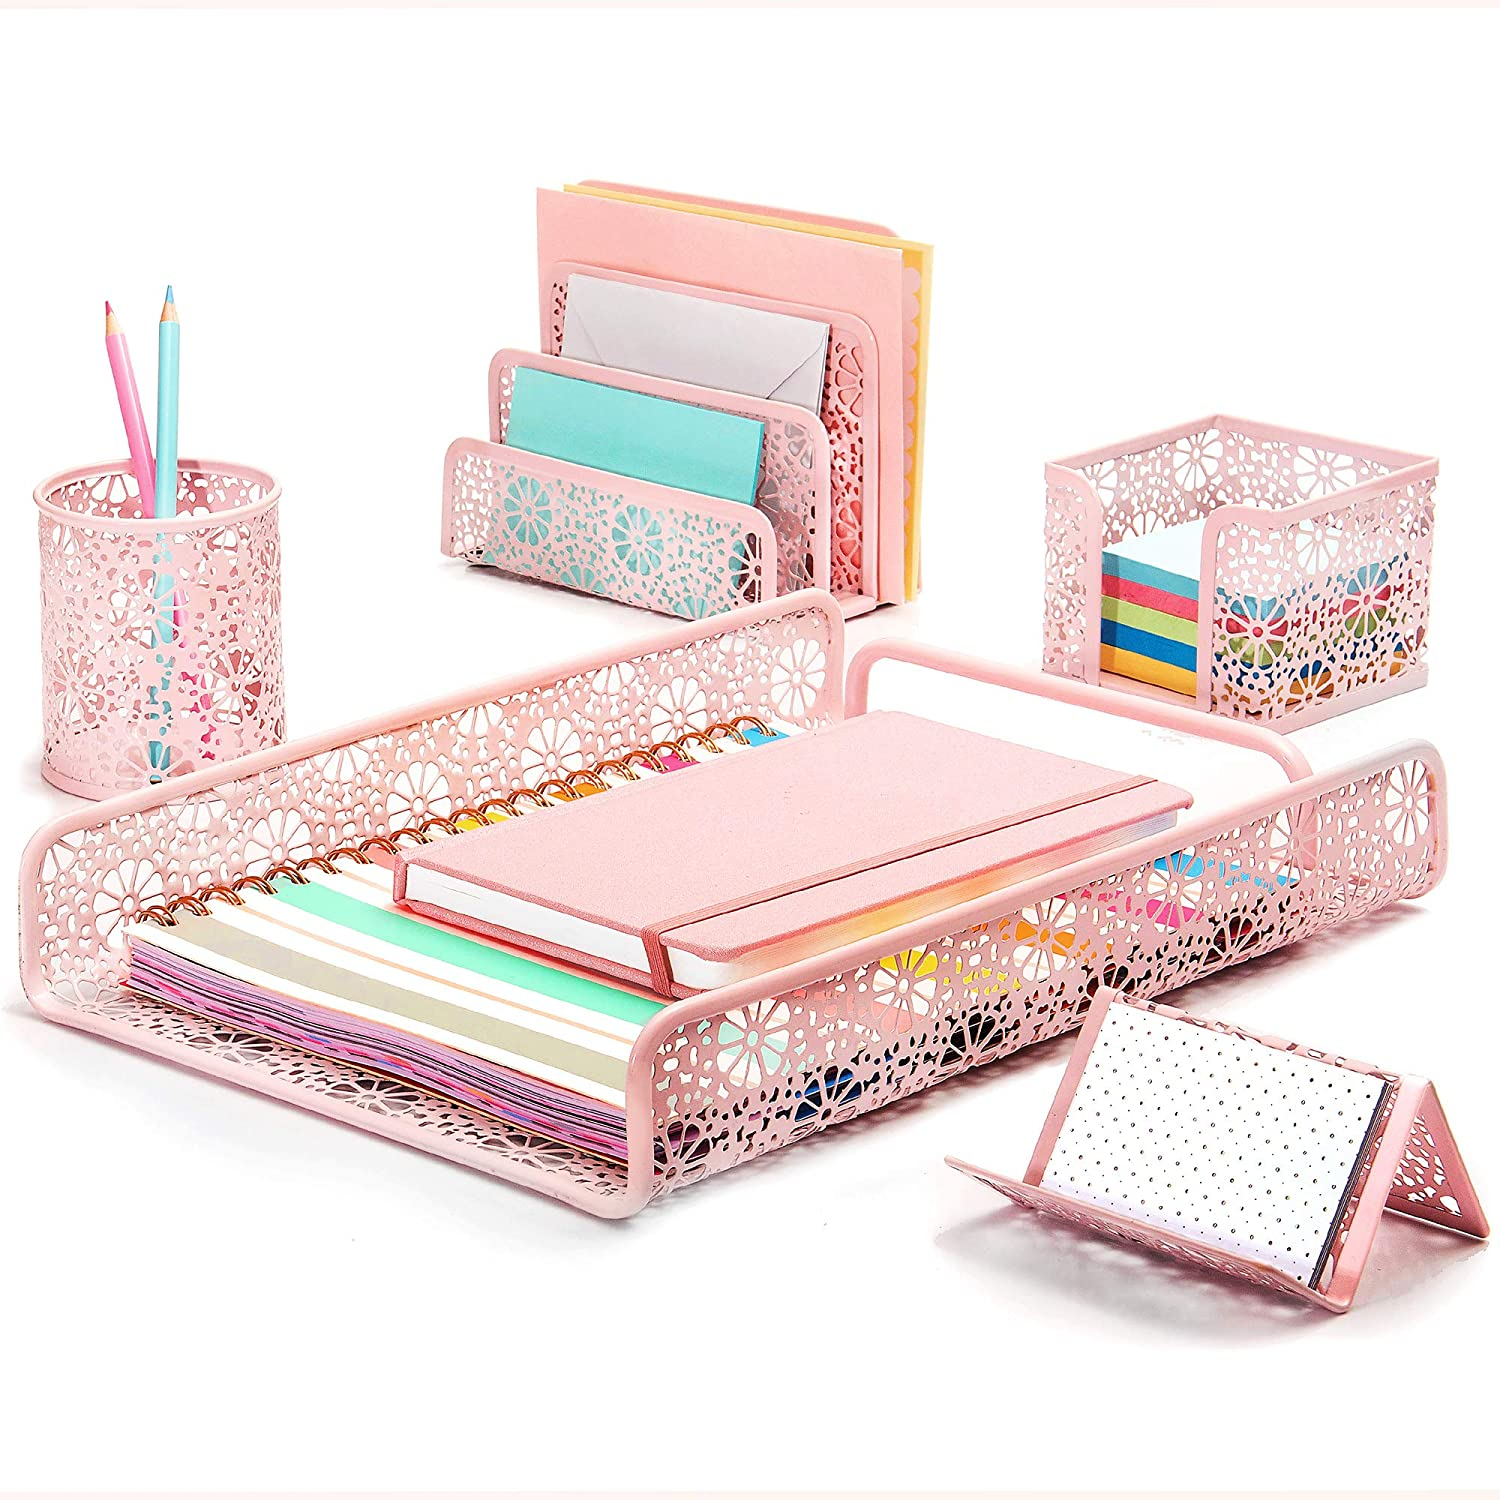 Hudstill Pink Cute Desk Organizer Set for Women and Girls in Sunflower  Design with 34 Pieces : File Tray, Mail Organizer, Pen Cup, Sticky Notes  Holder